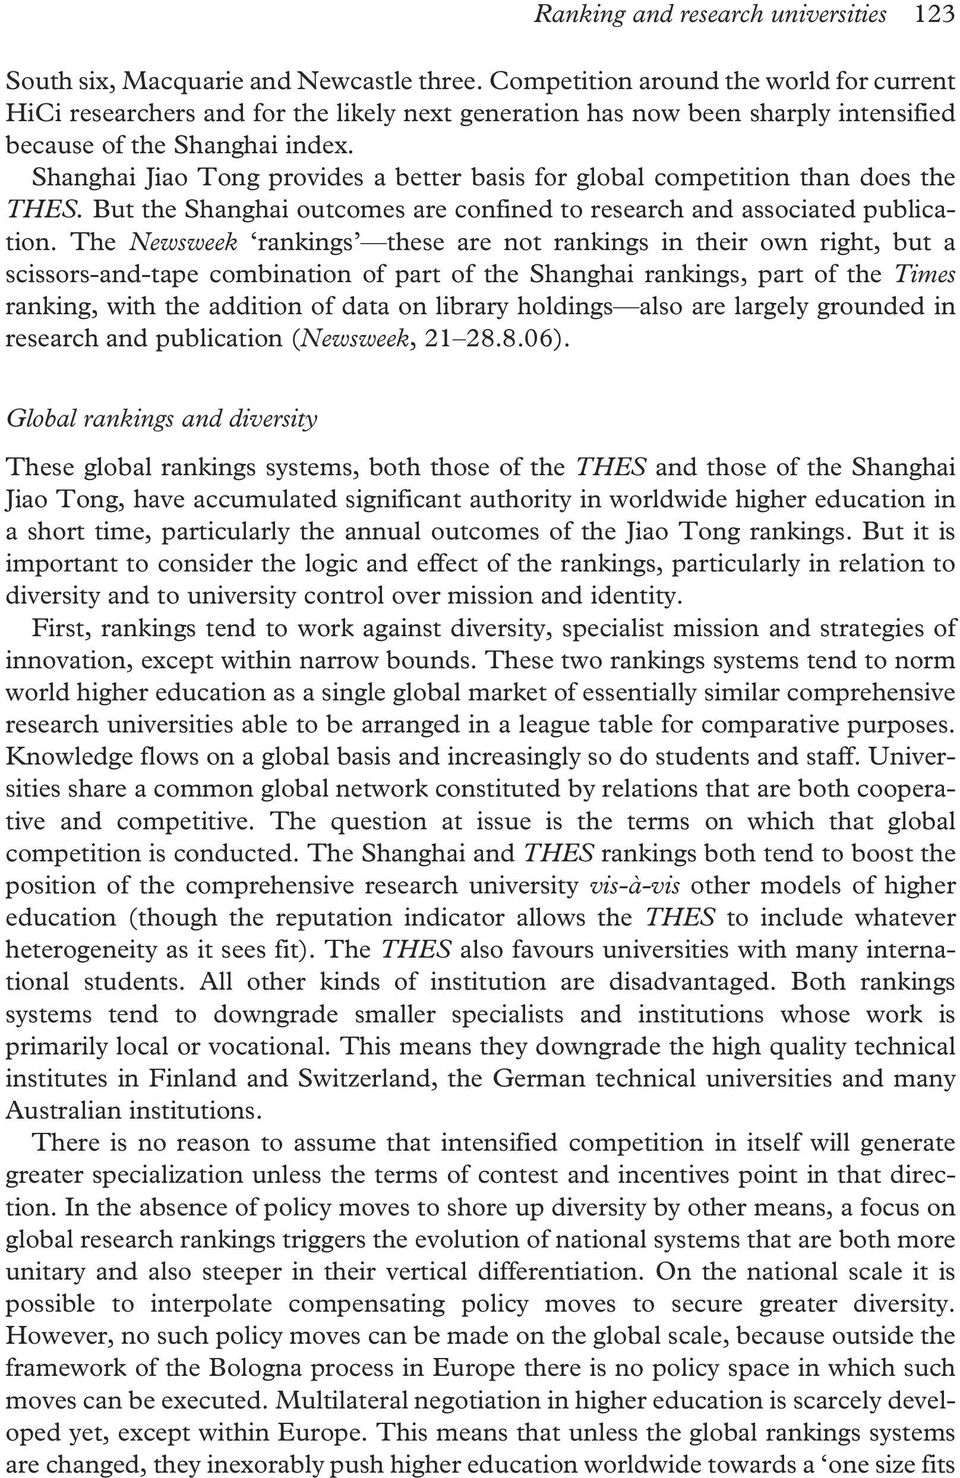 Shanghai Jiao Tong provides a better basis for global competition than does the THES. But the Shanghai outcomes are confined to research and associated publication.